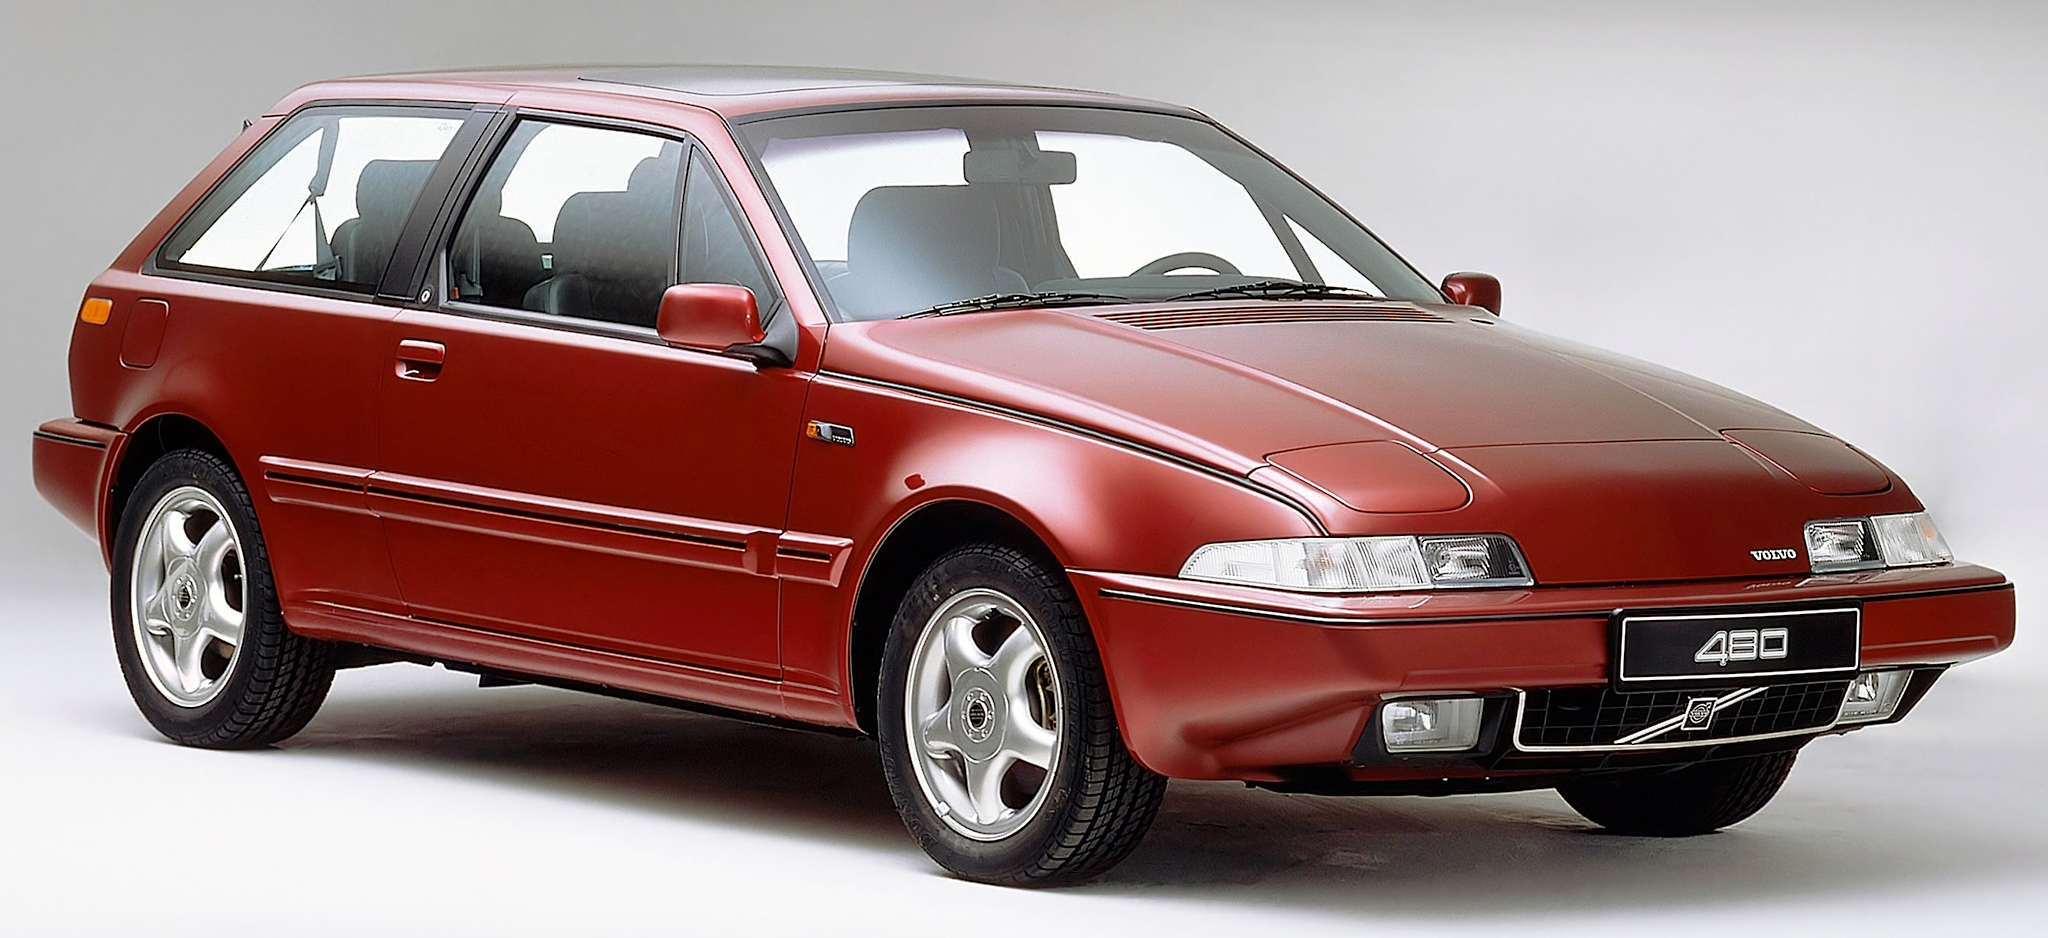 480 es the volvo that paved the way to the future is turning 30 volvo 480  volvo 480 turbo wiring diagram - wiring diagrams